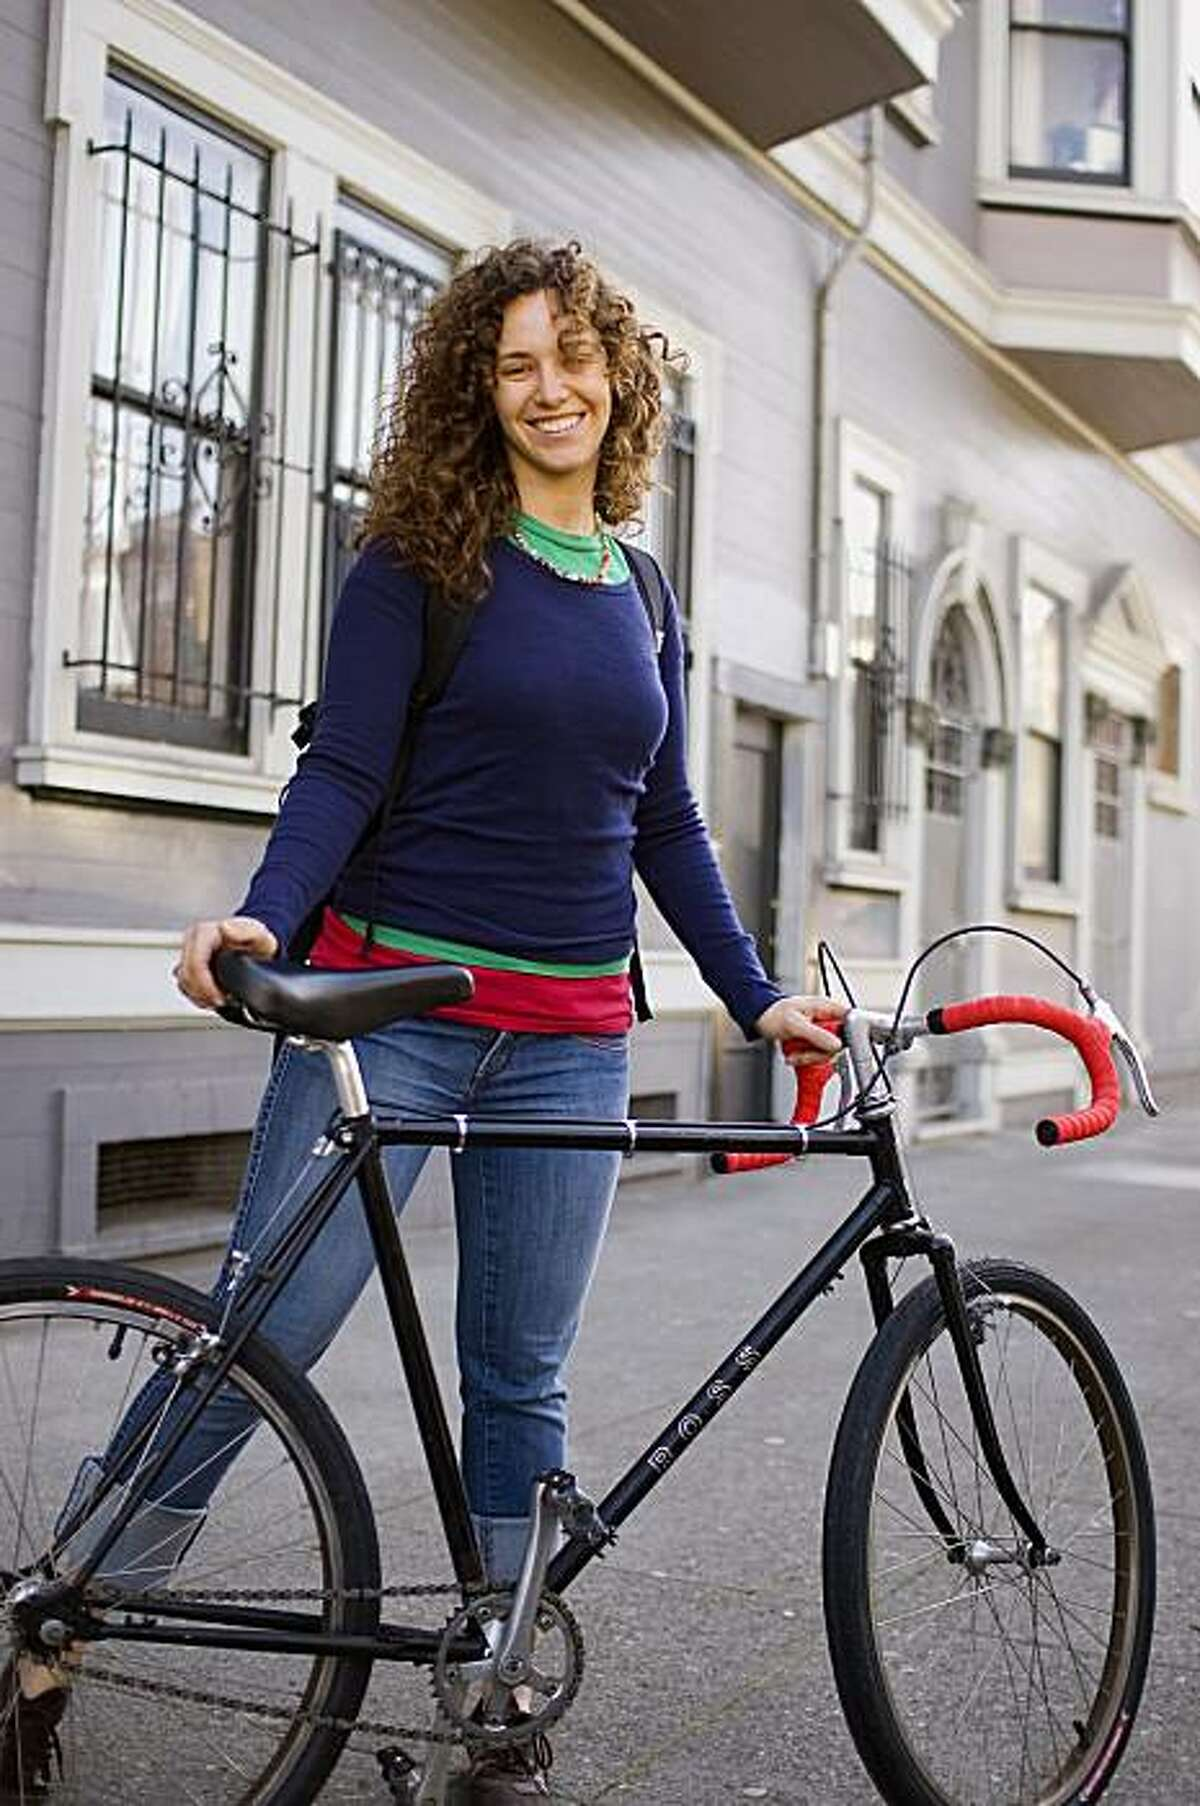 Jessica Collier is among a growing number of women choosing to commute by bicycle.